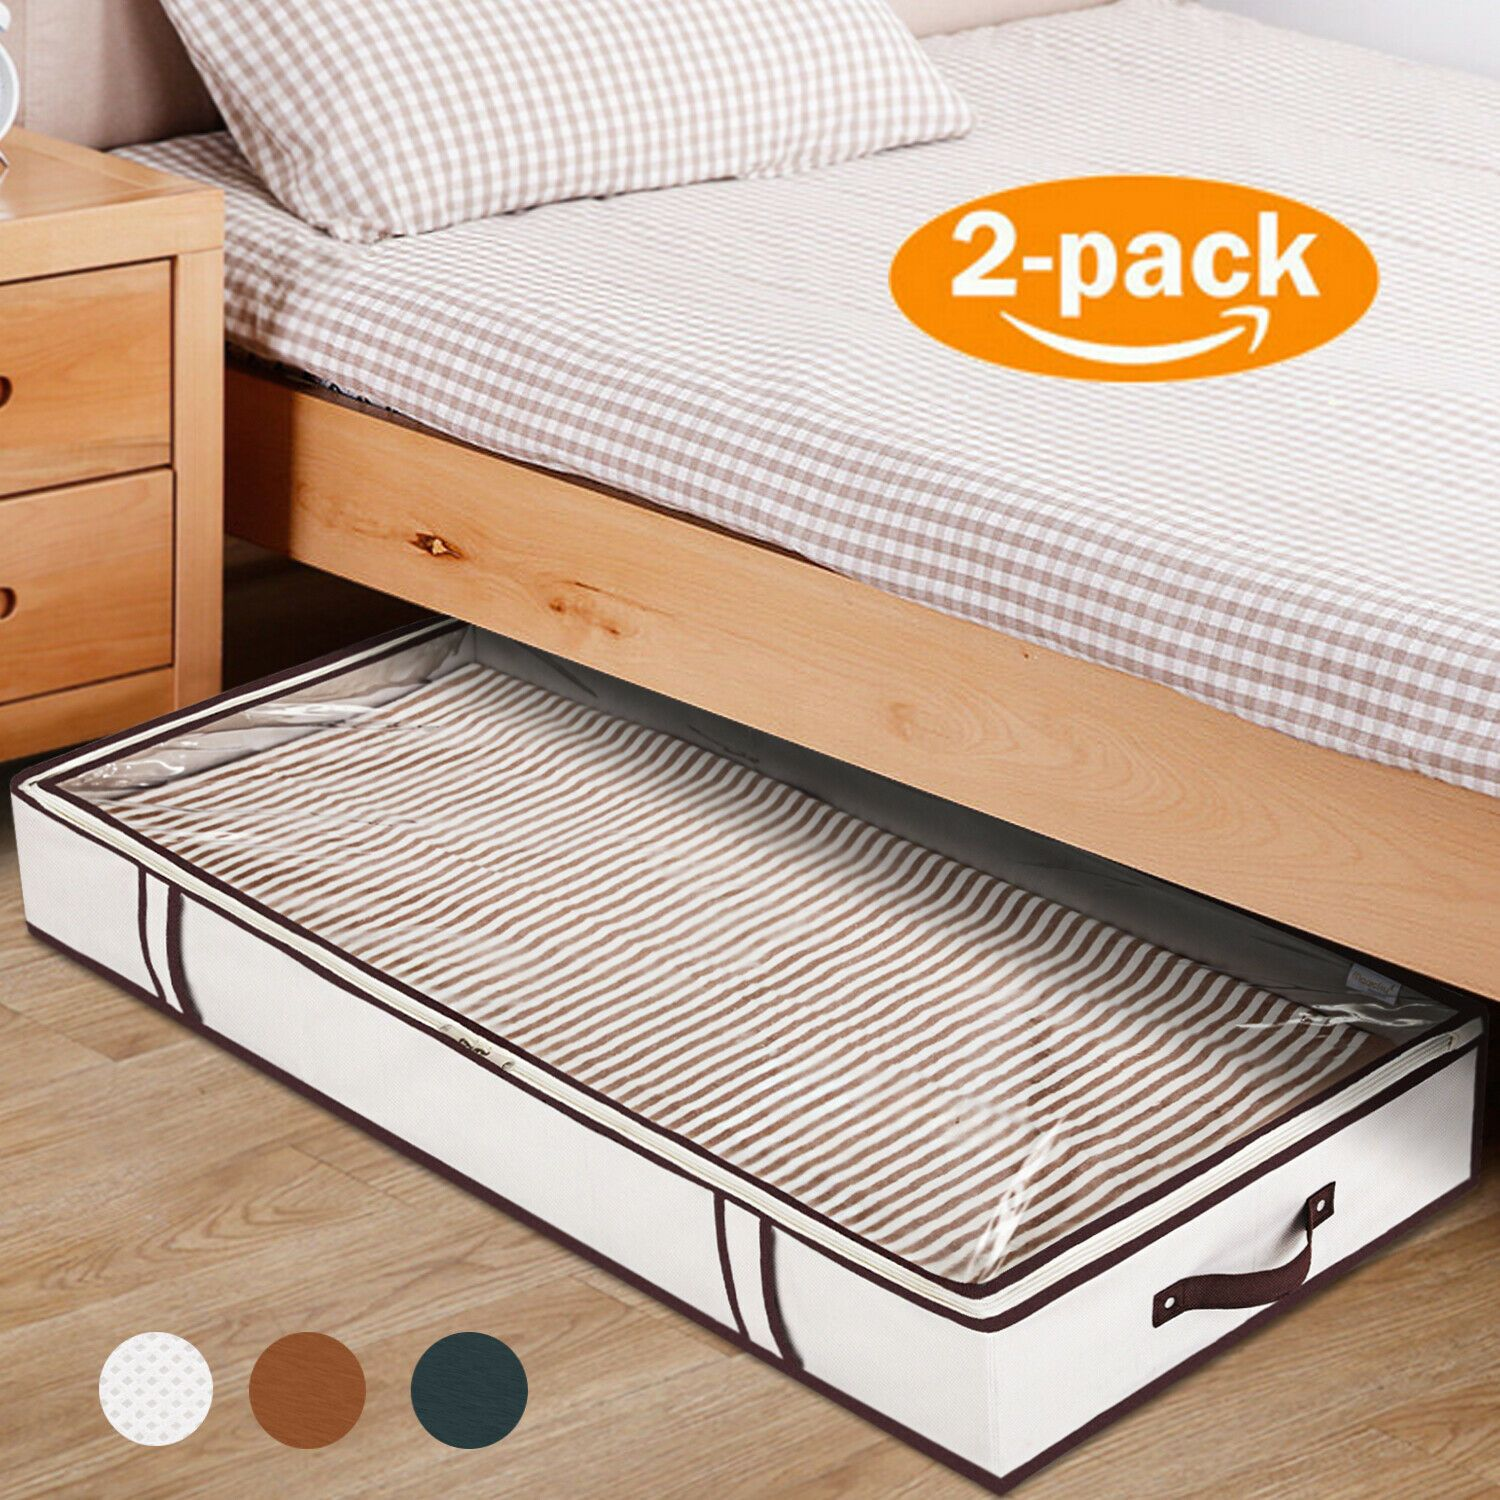 Details about 2 Pack Under Bed Storage Bag Containers Shoe